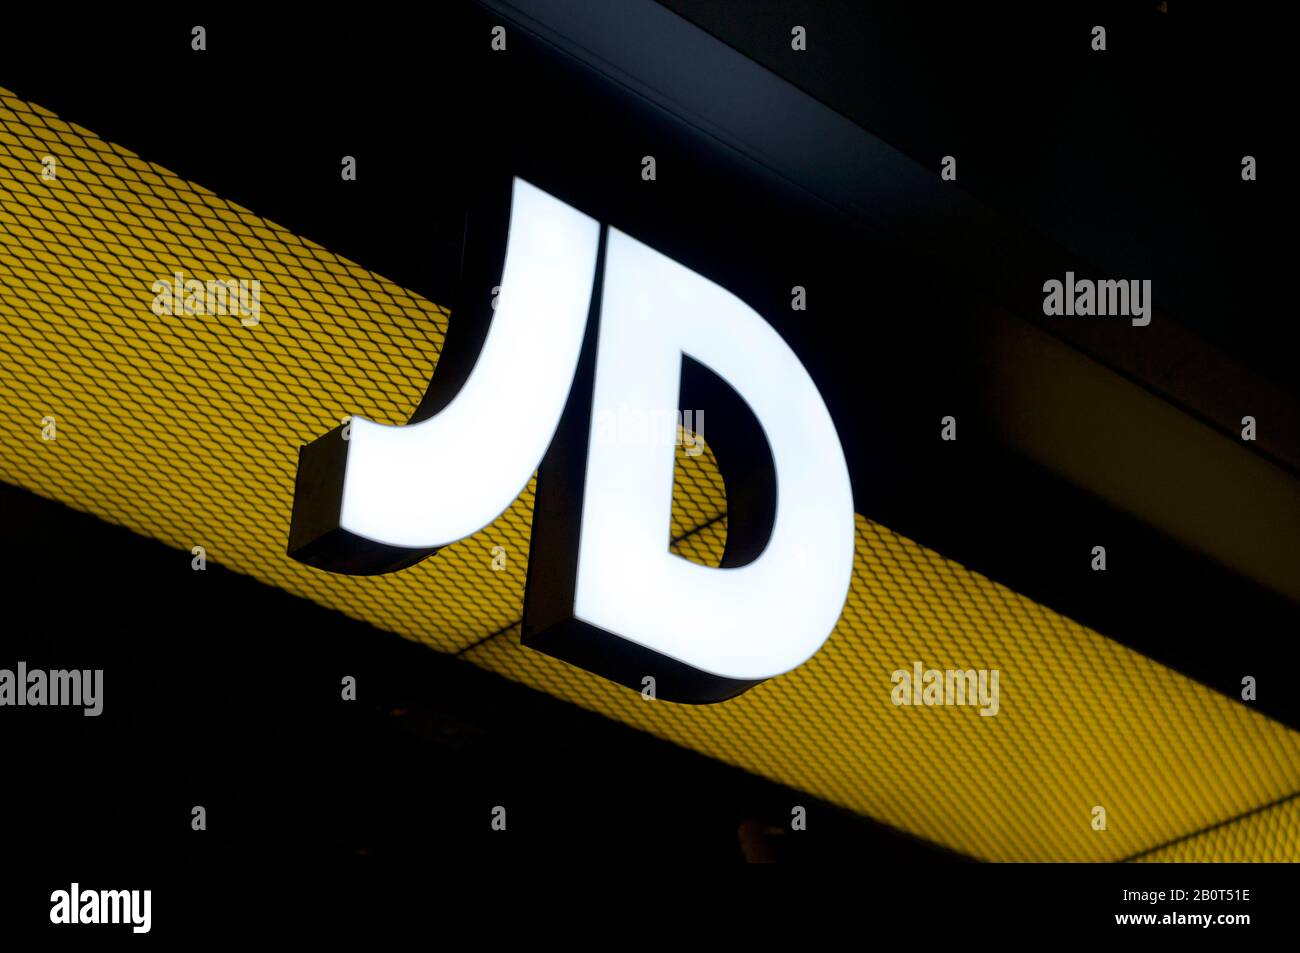 jd sports logo high resolution stock photography and images alamy https www alamy com brisbane queensland australia 17th january 2020 view of an illuminated jd sports sign hanging at the shop entrance in brisbane jd sports is a s image344738170 html